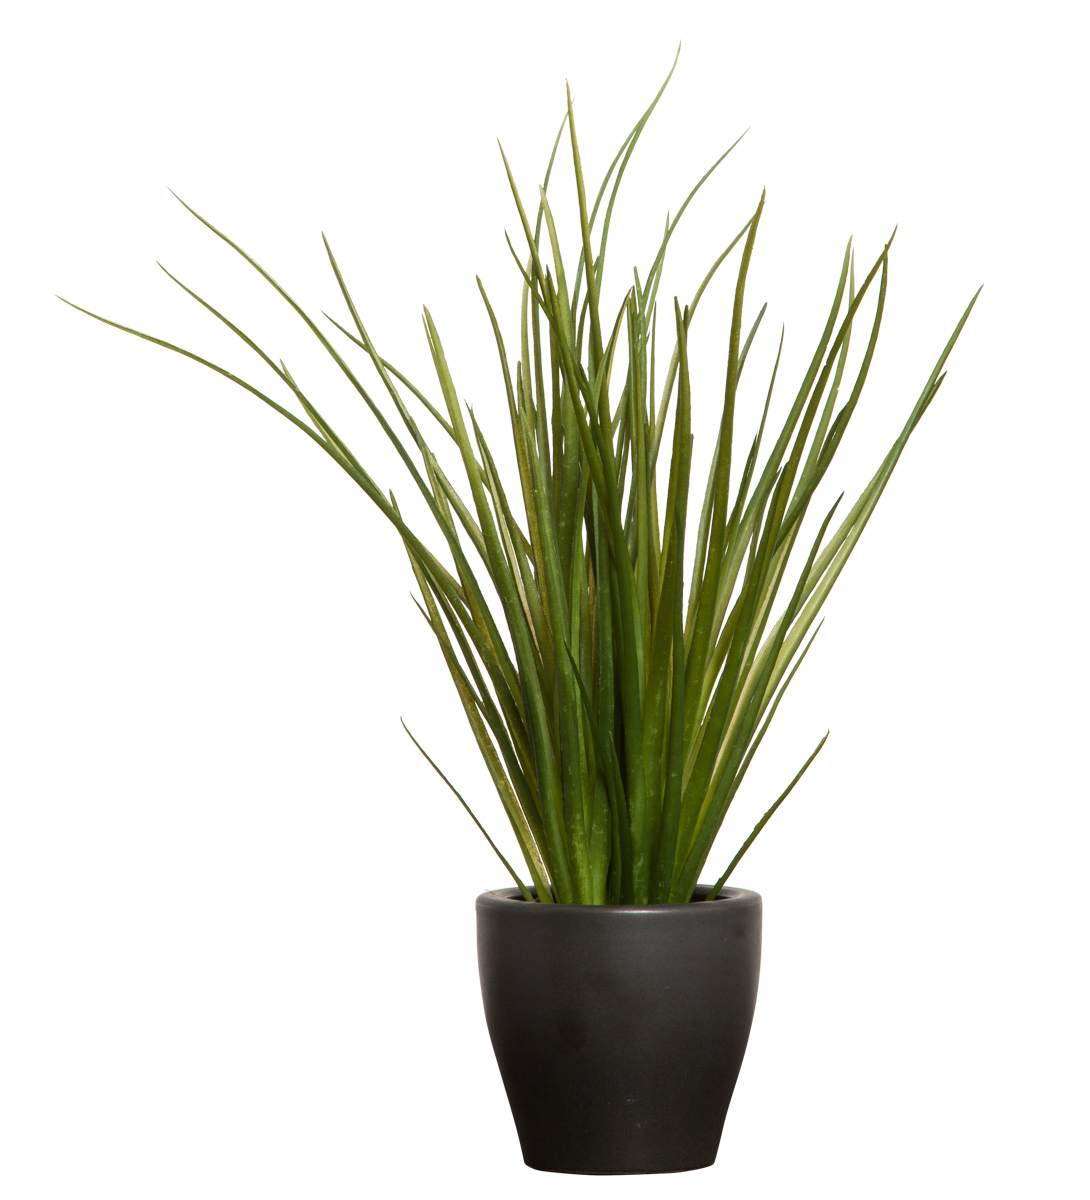 GRASS IN BLACK POT